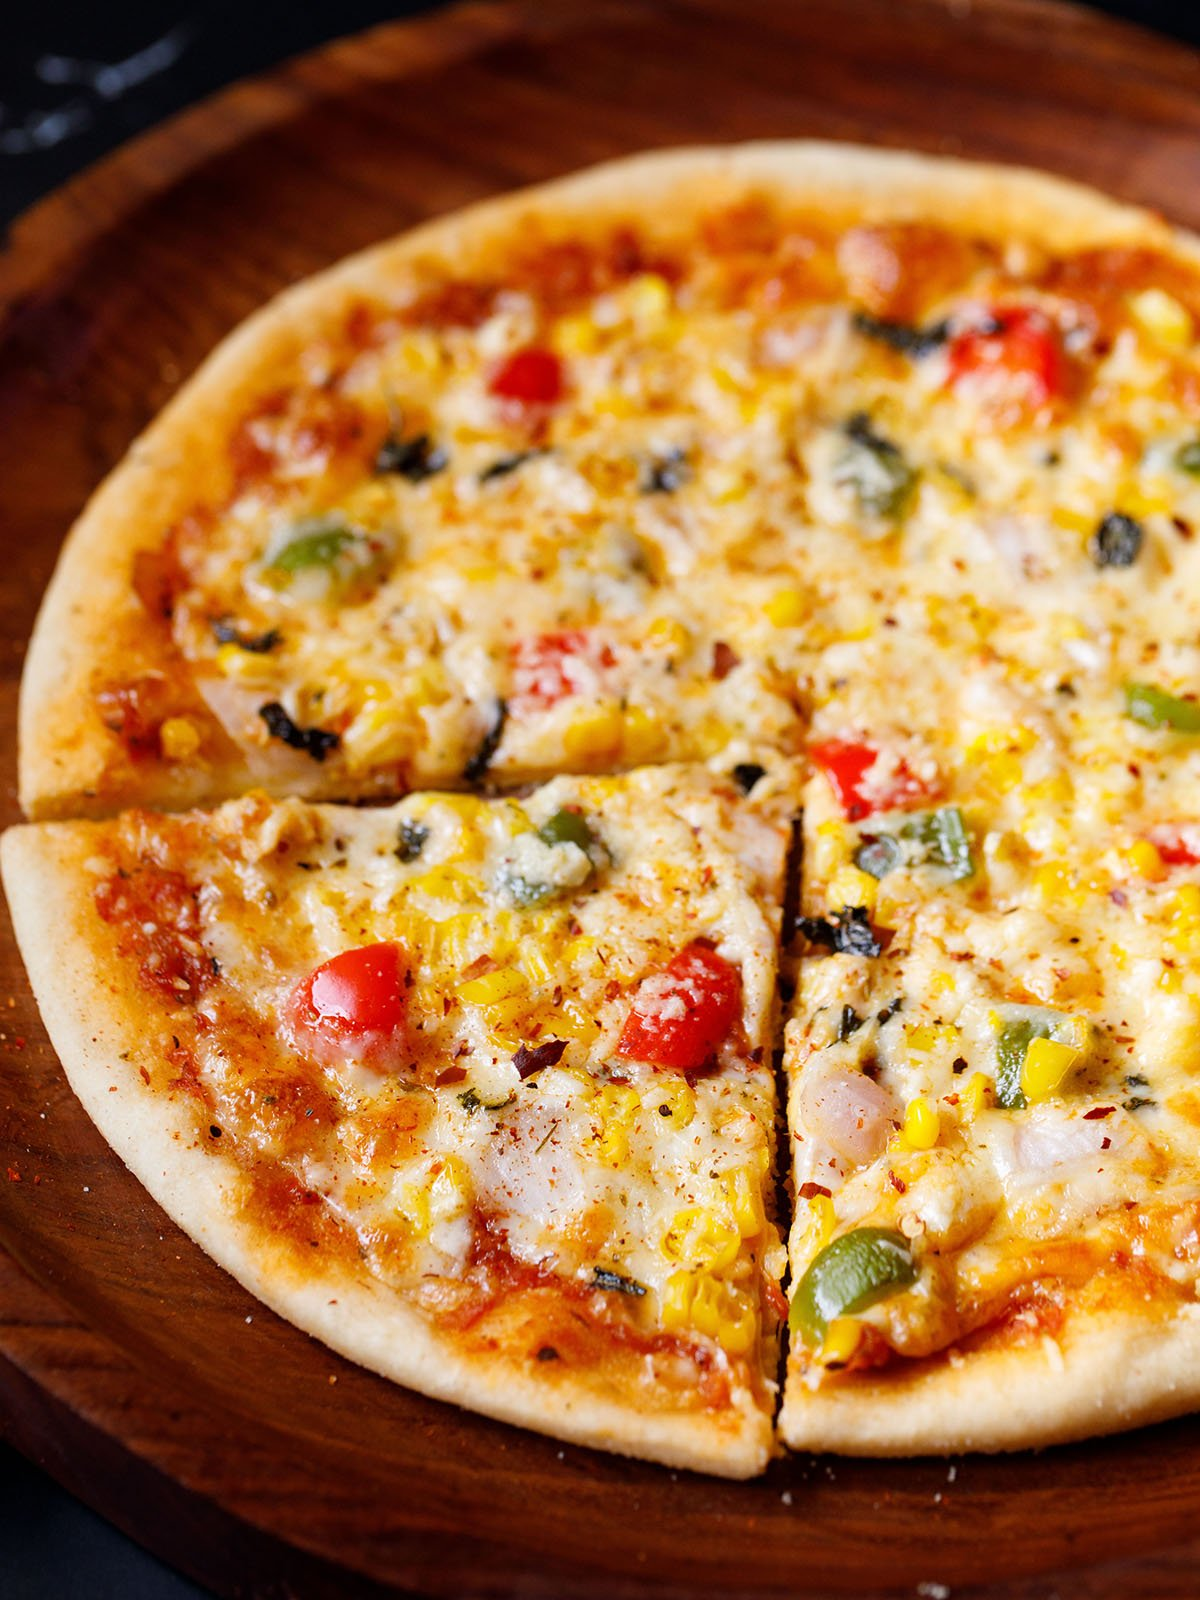 a triangular slice of veg pizza with the remaining pizza on a wooden pizza plate sprinkled with some dried herbs and red chilli flakes